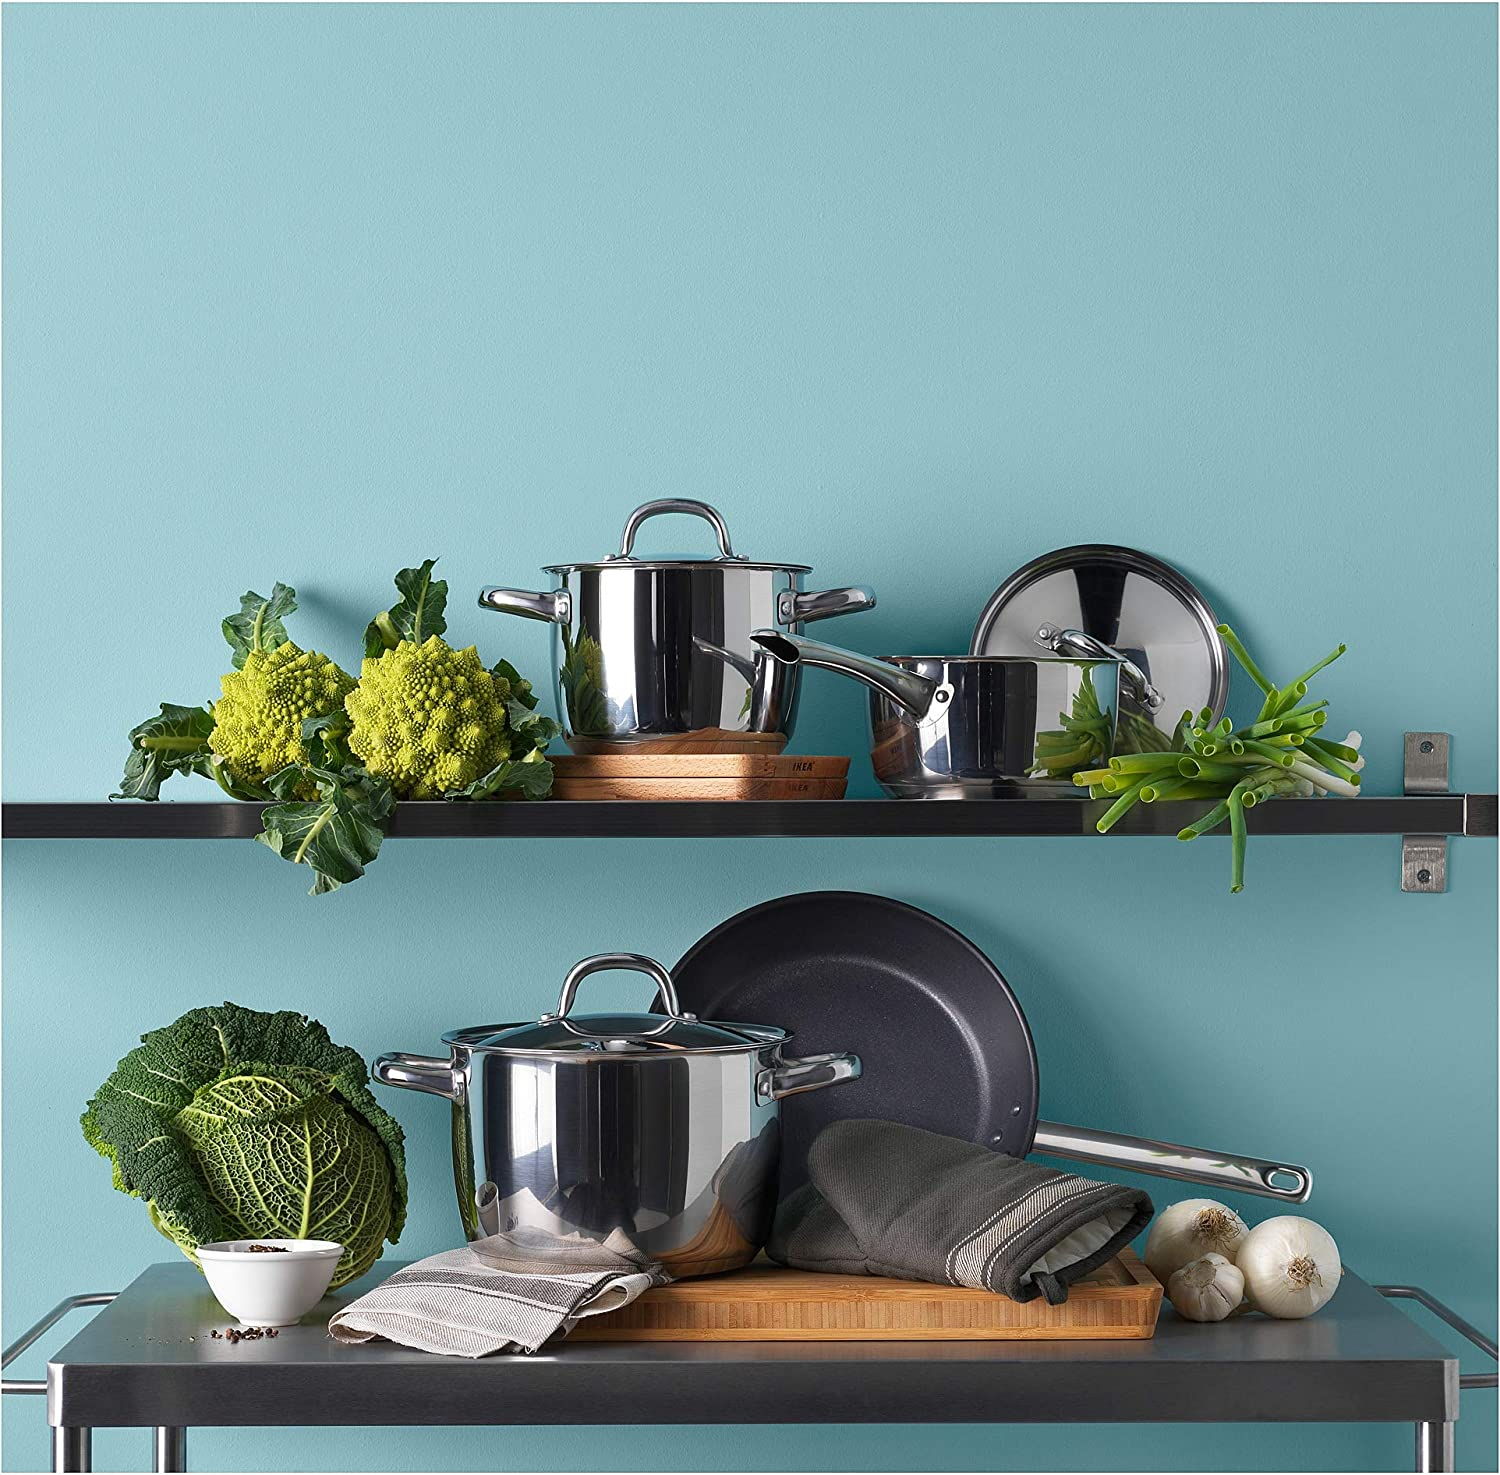 IKEA OUMBÄRLIG Cookware set review - Best cookware for gas stove